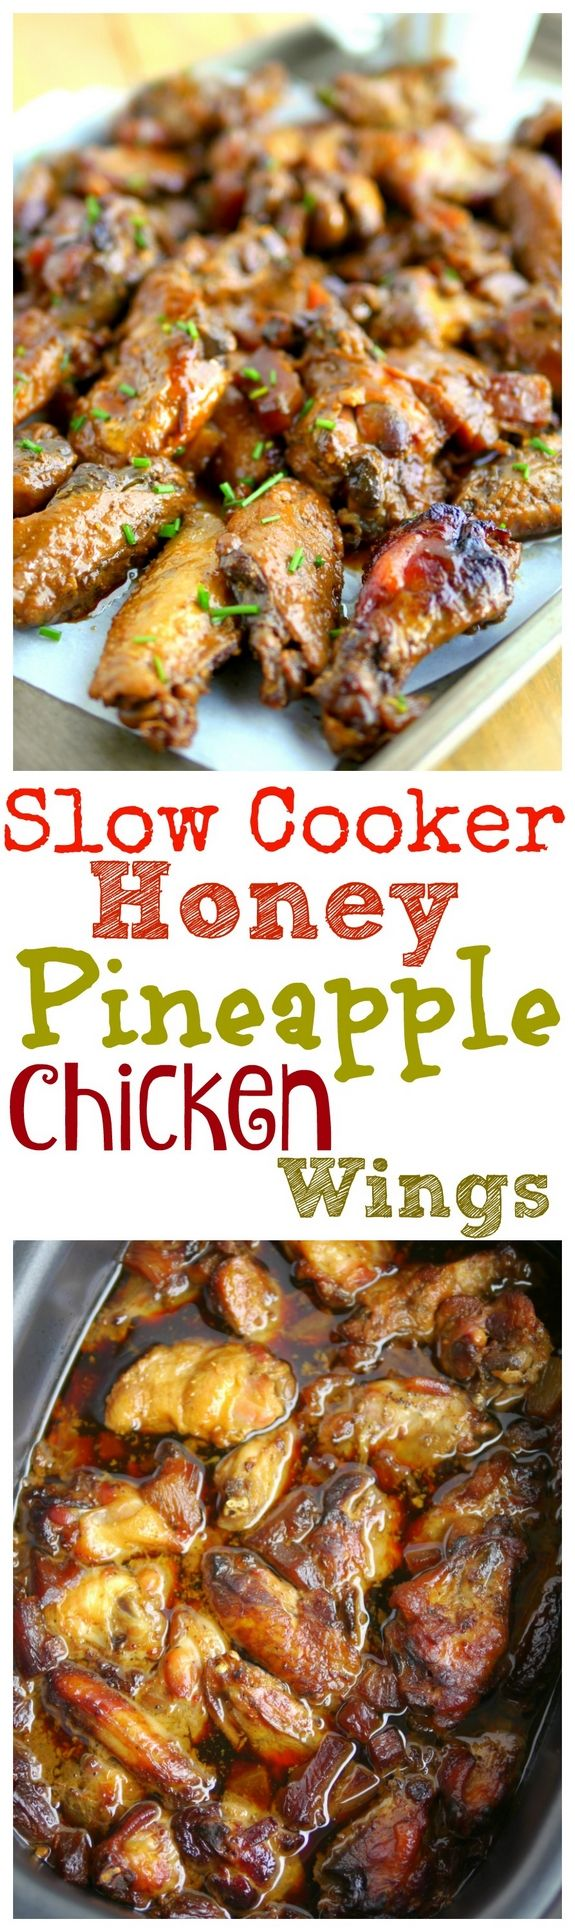 Slow Cooker Honey Pineapple Chicken Wings are your perfect Game Day appetizer, from NoblePig.com.